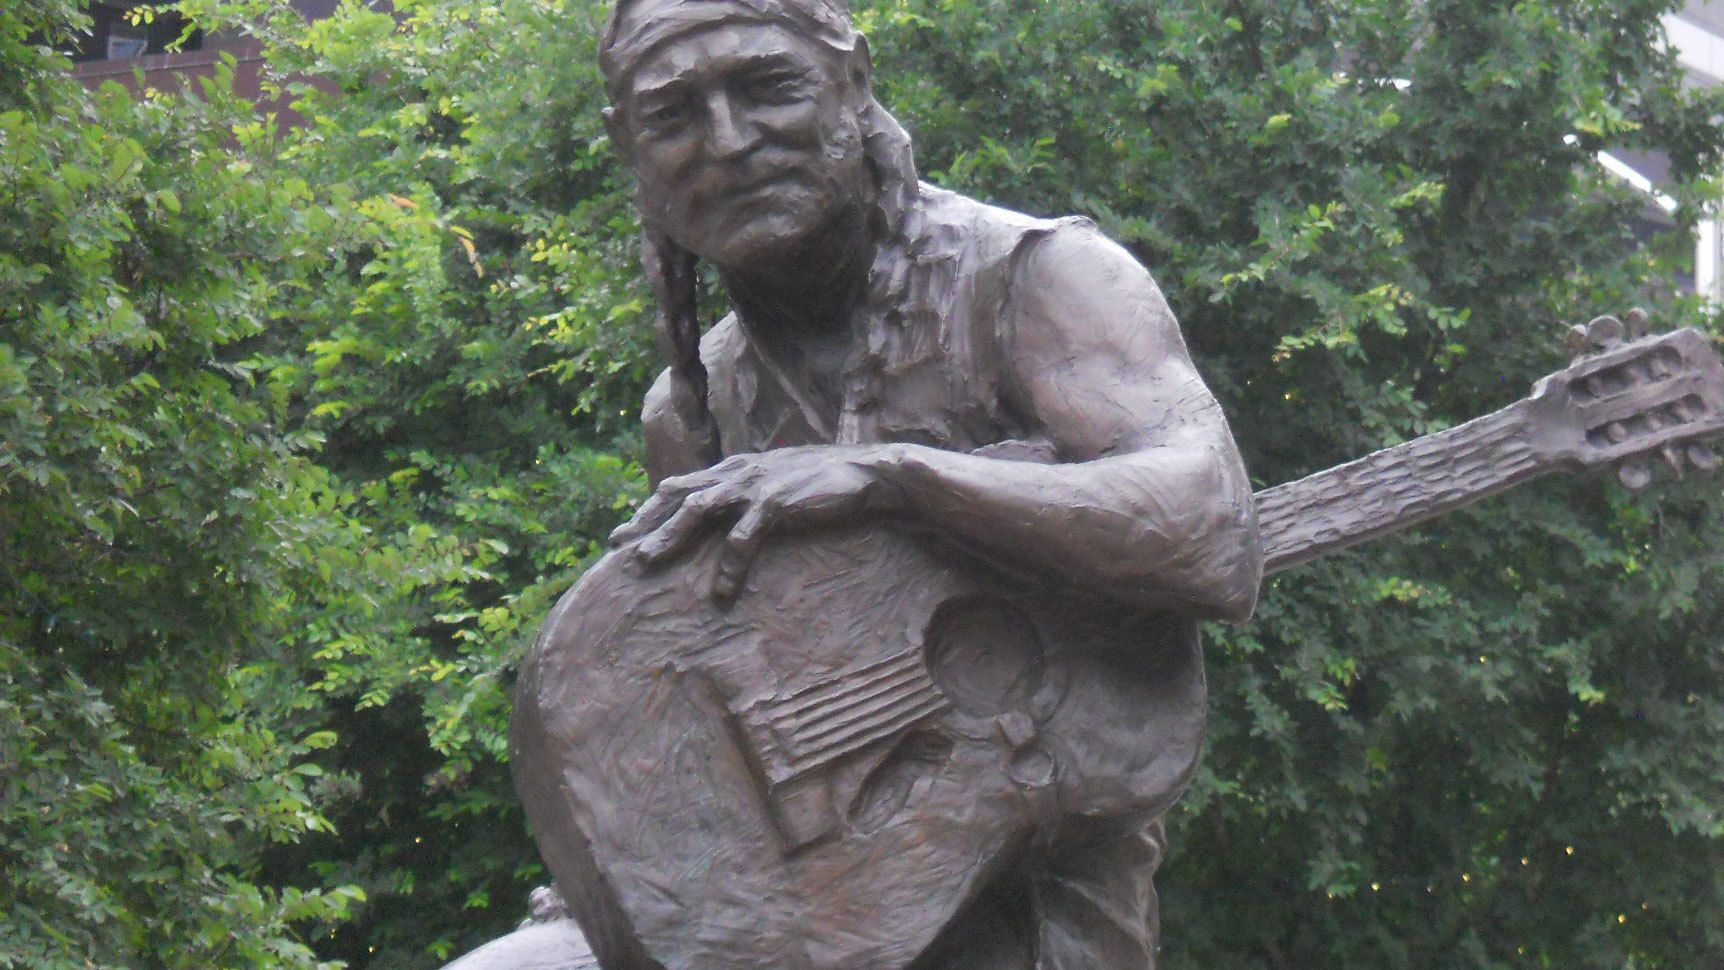 Statue of legendary musician, Willie Nelson, native of Austin, Texas